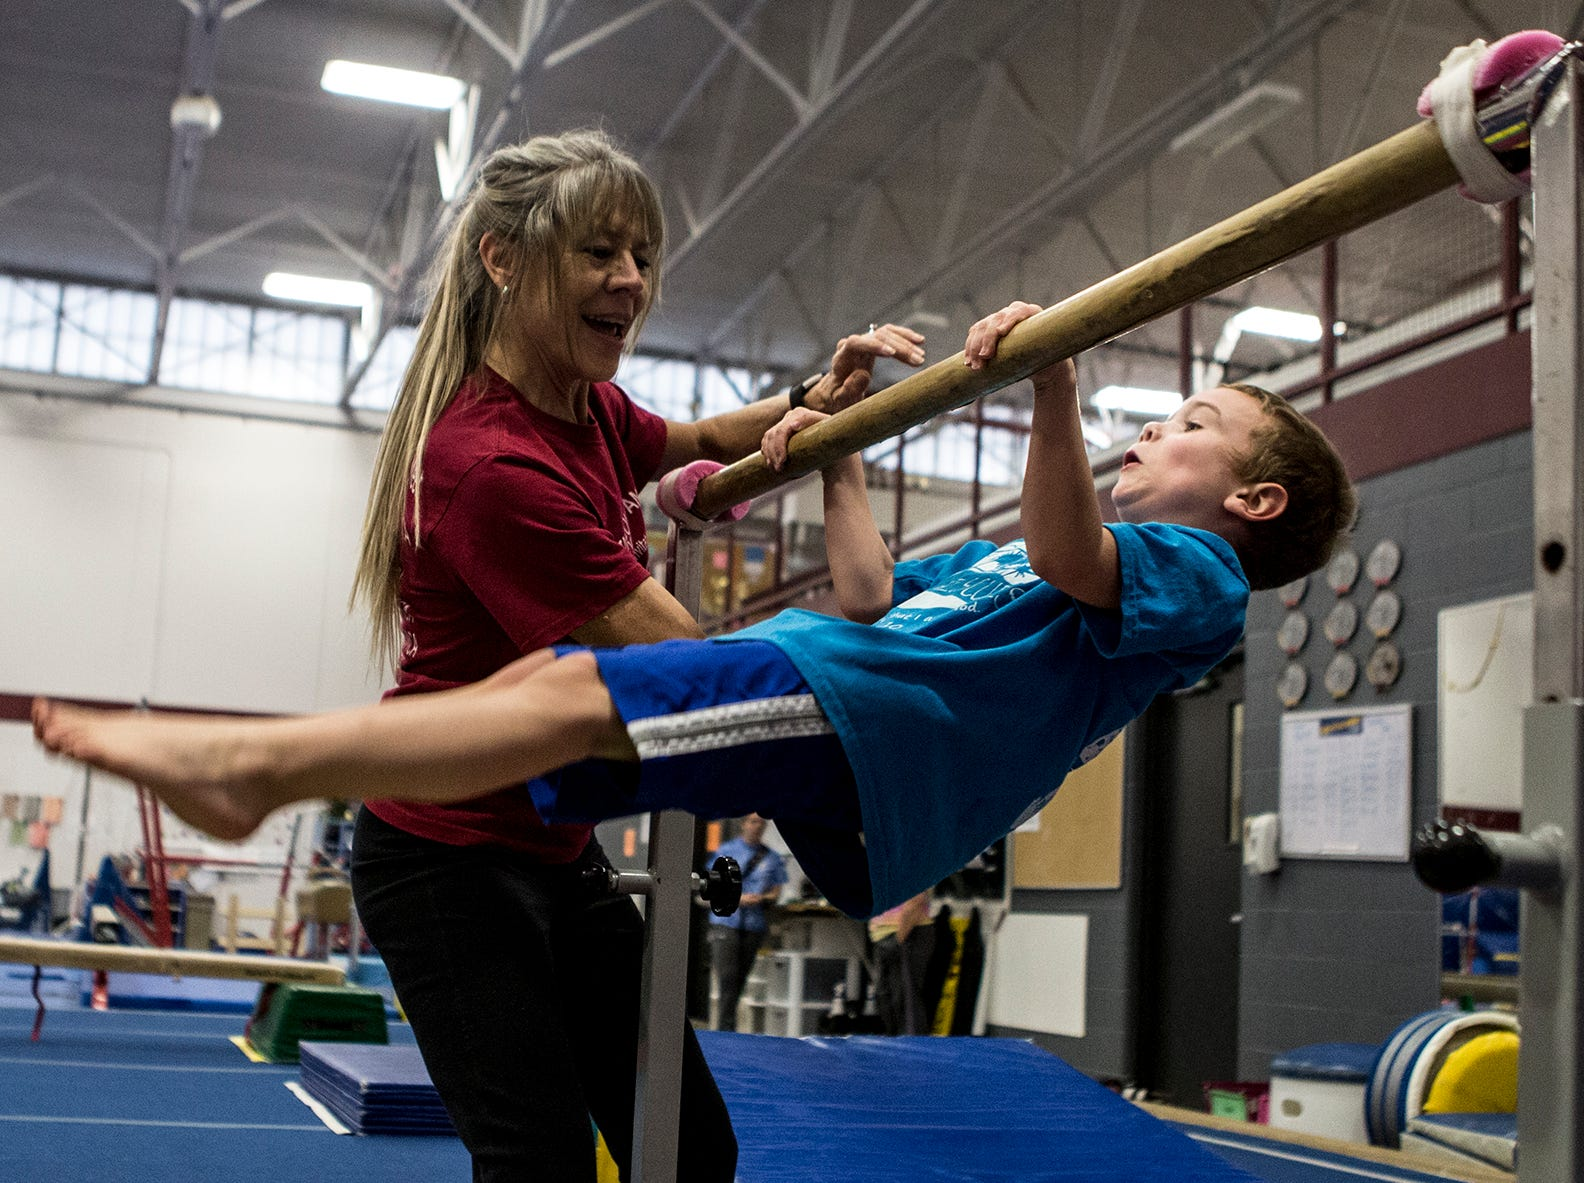 Jeanne Reid helps Micaiah Swick work on flipping around the bar during a preschool open gymnastics class at the Licking County YMCA. The YMCA will be holding a second preschool open gym Friday January 4th in the Mitchell Center. Prices are $15 for members and $25 for nonmembers, ages 3-6.